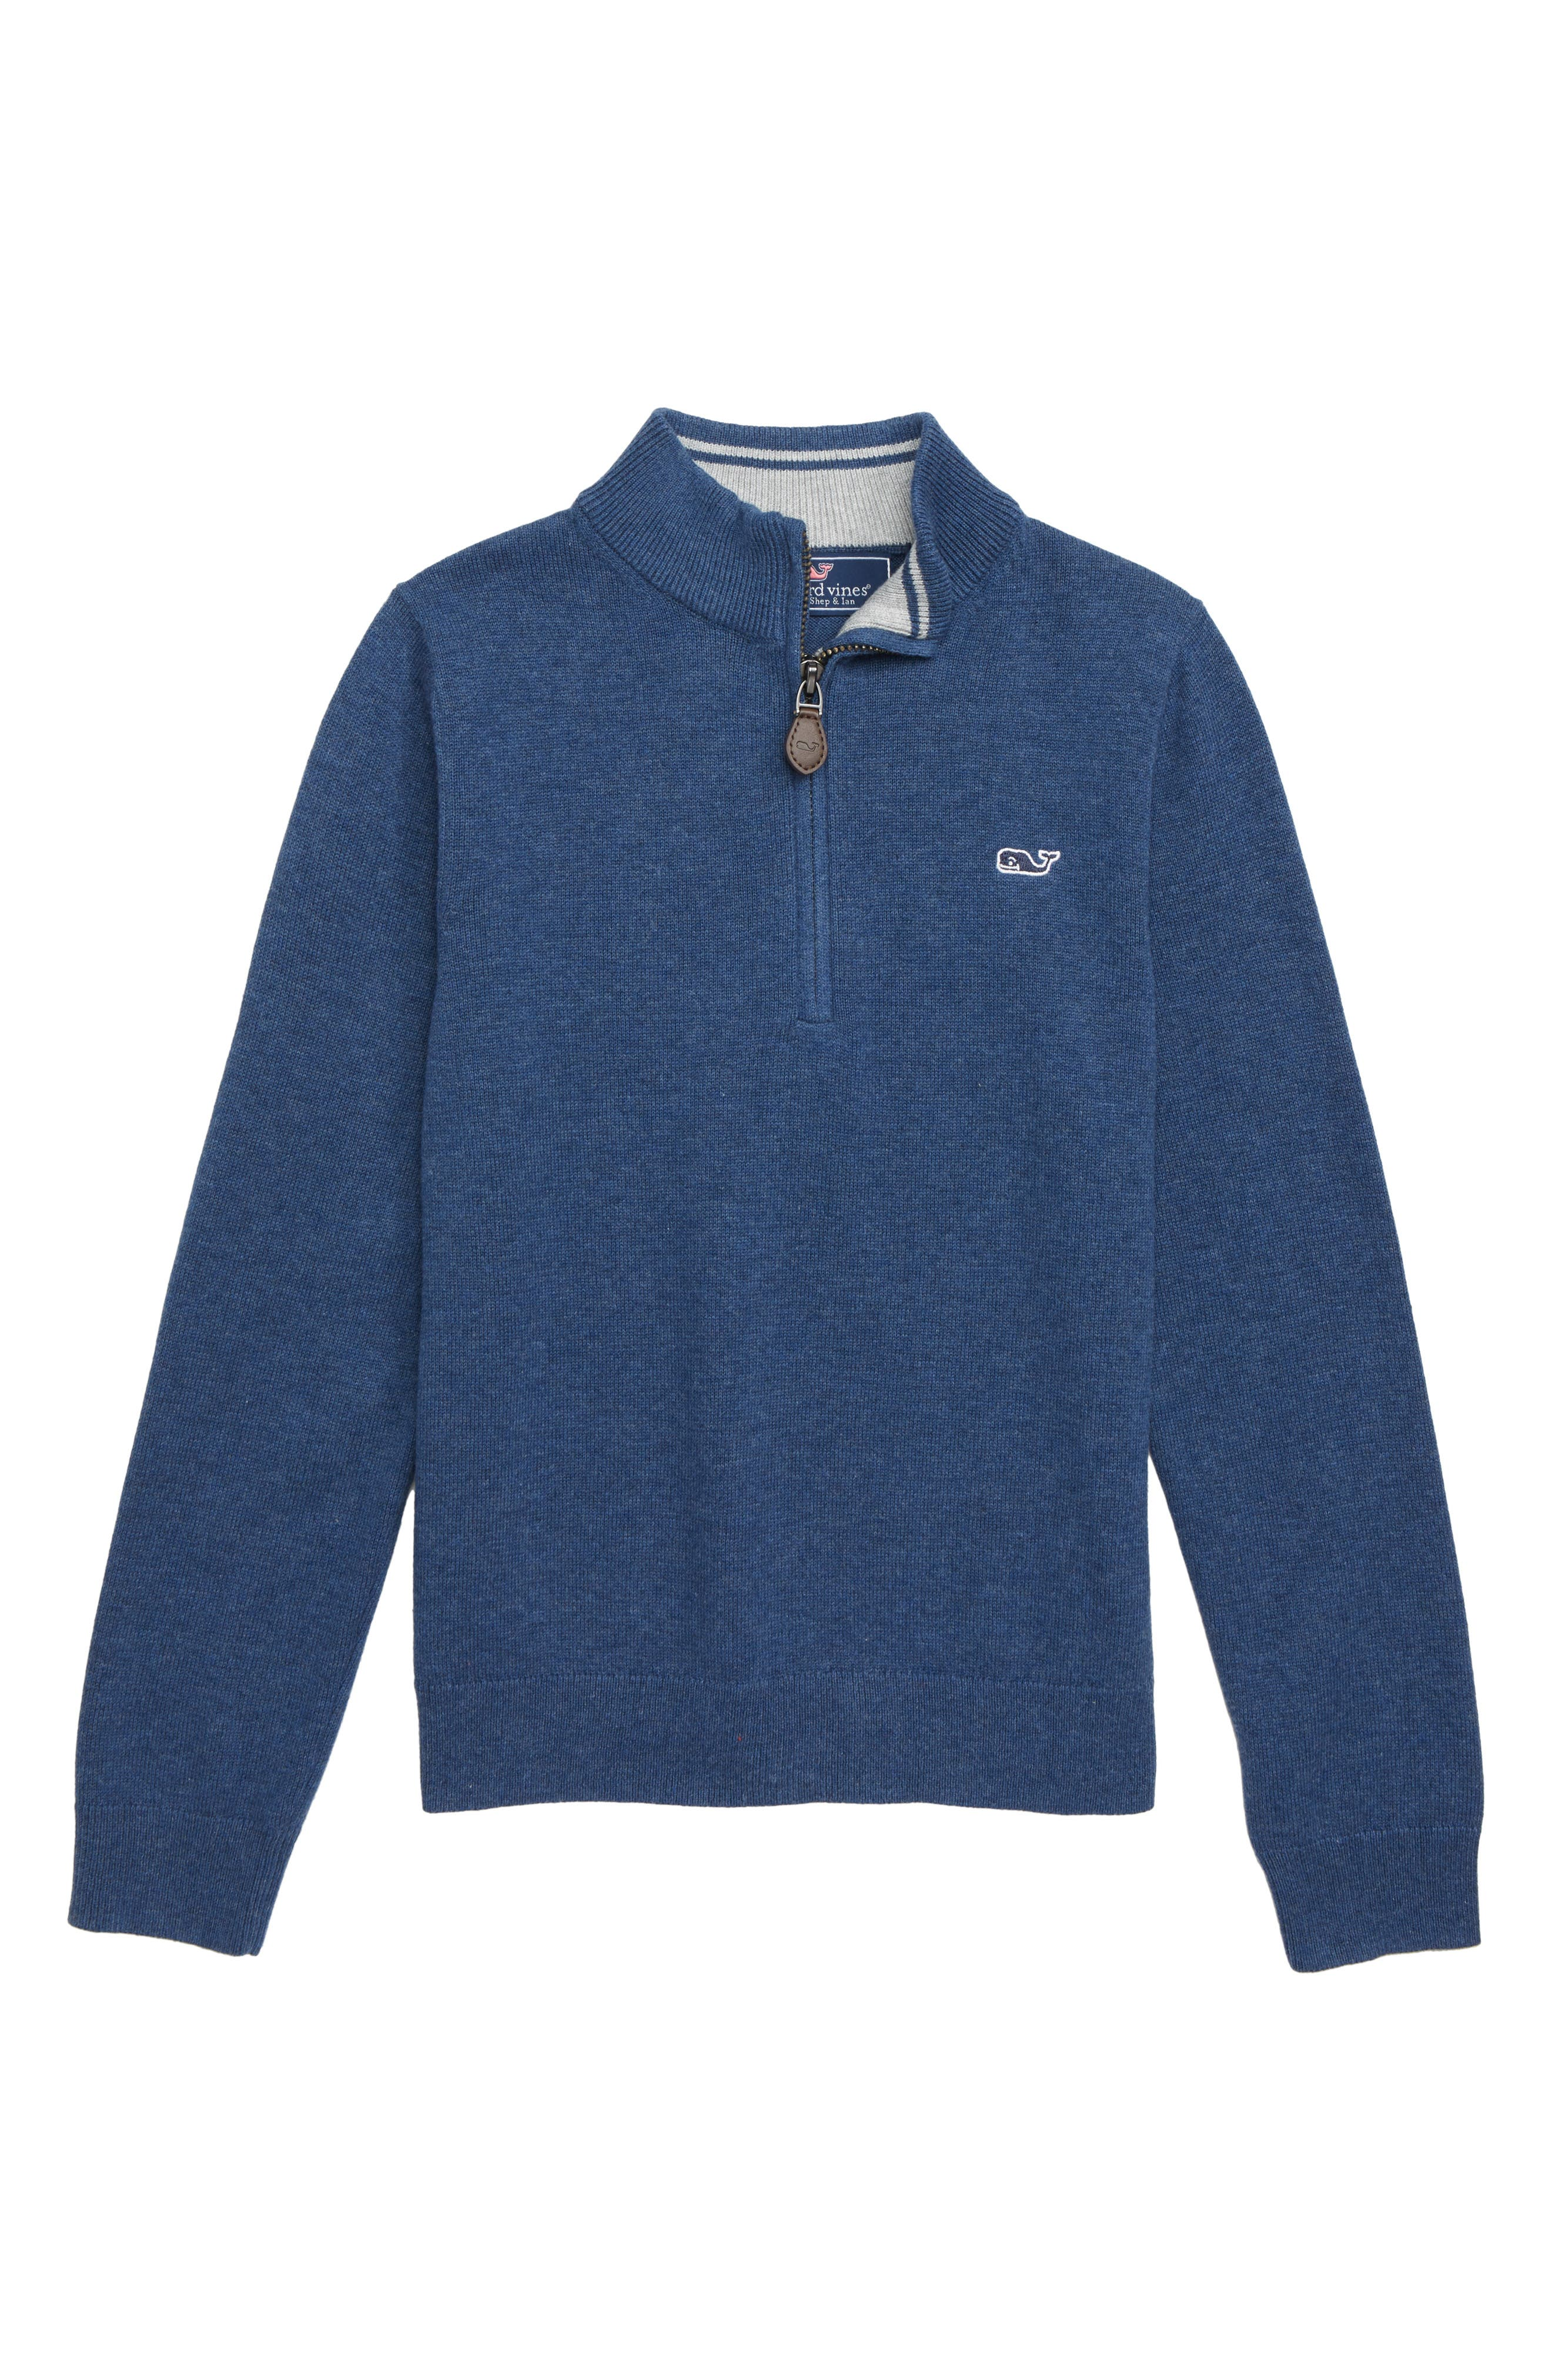 Boys Vineyard Vines Half Zip Sweater Size 5  Blue